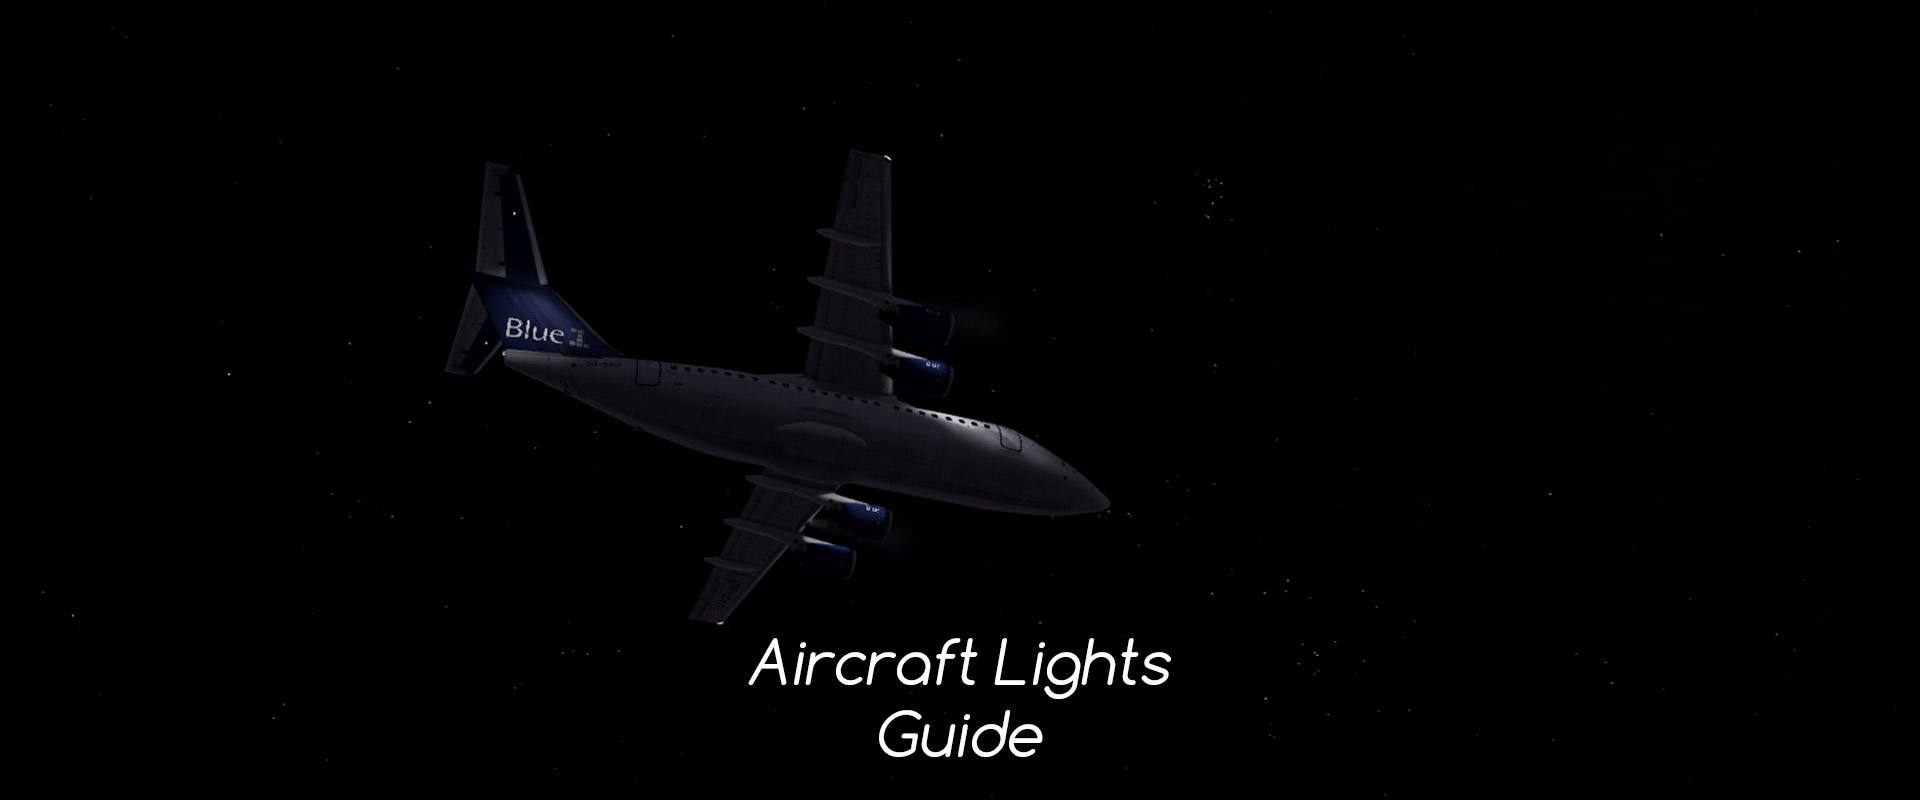 Aircraft lights - when to use?